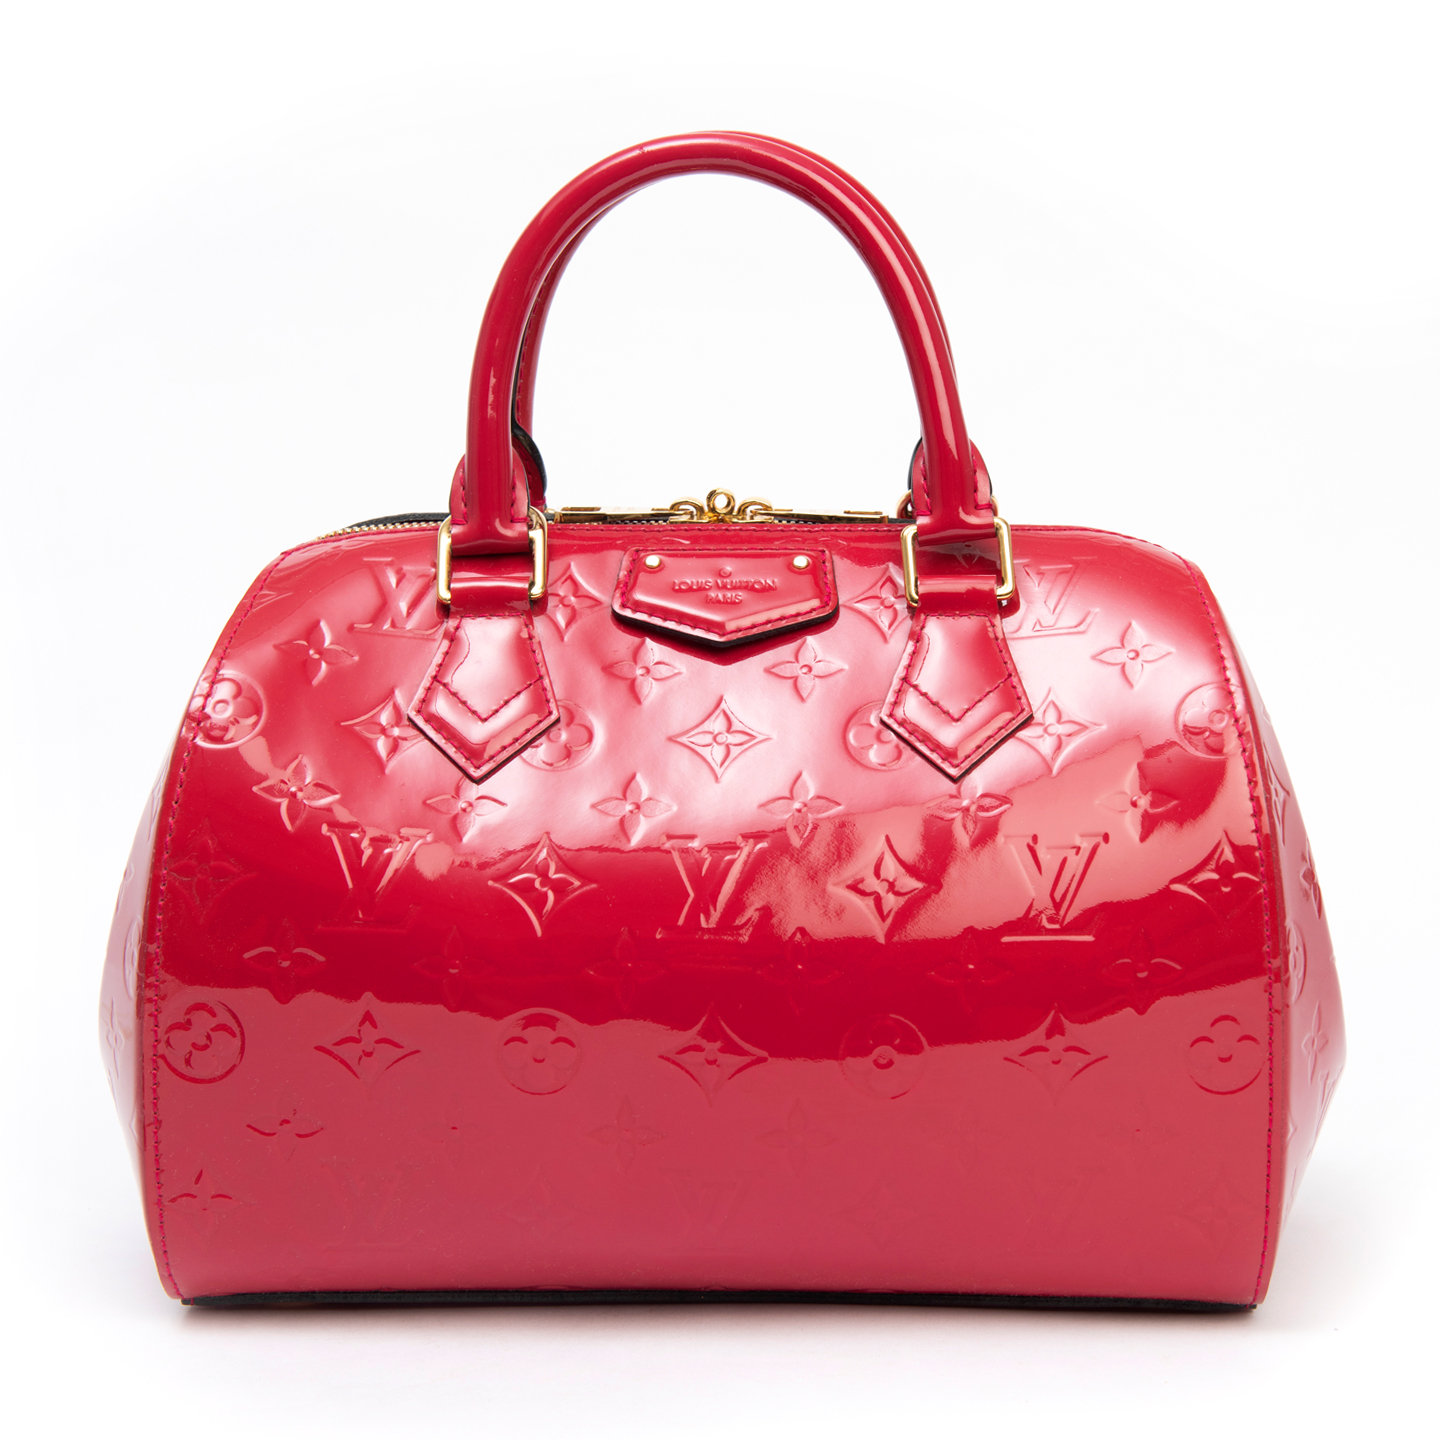 Louis Vuitton Rose Indian Monogram Vernis Montana Bag